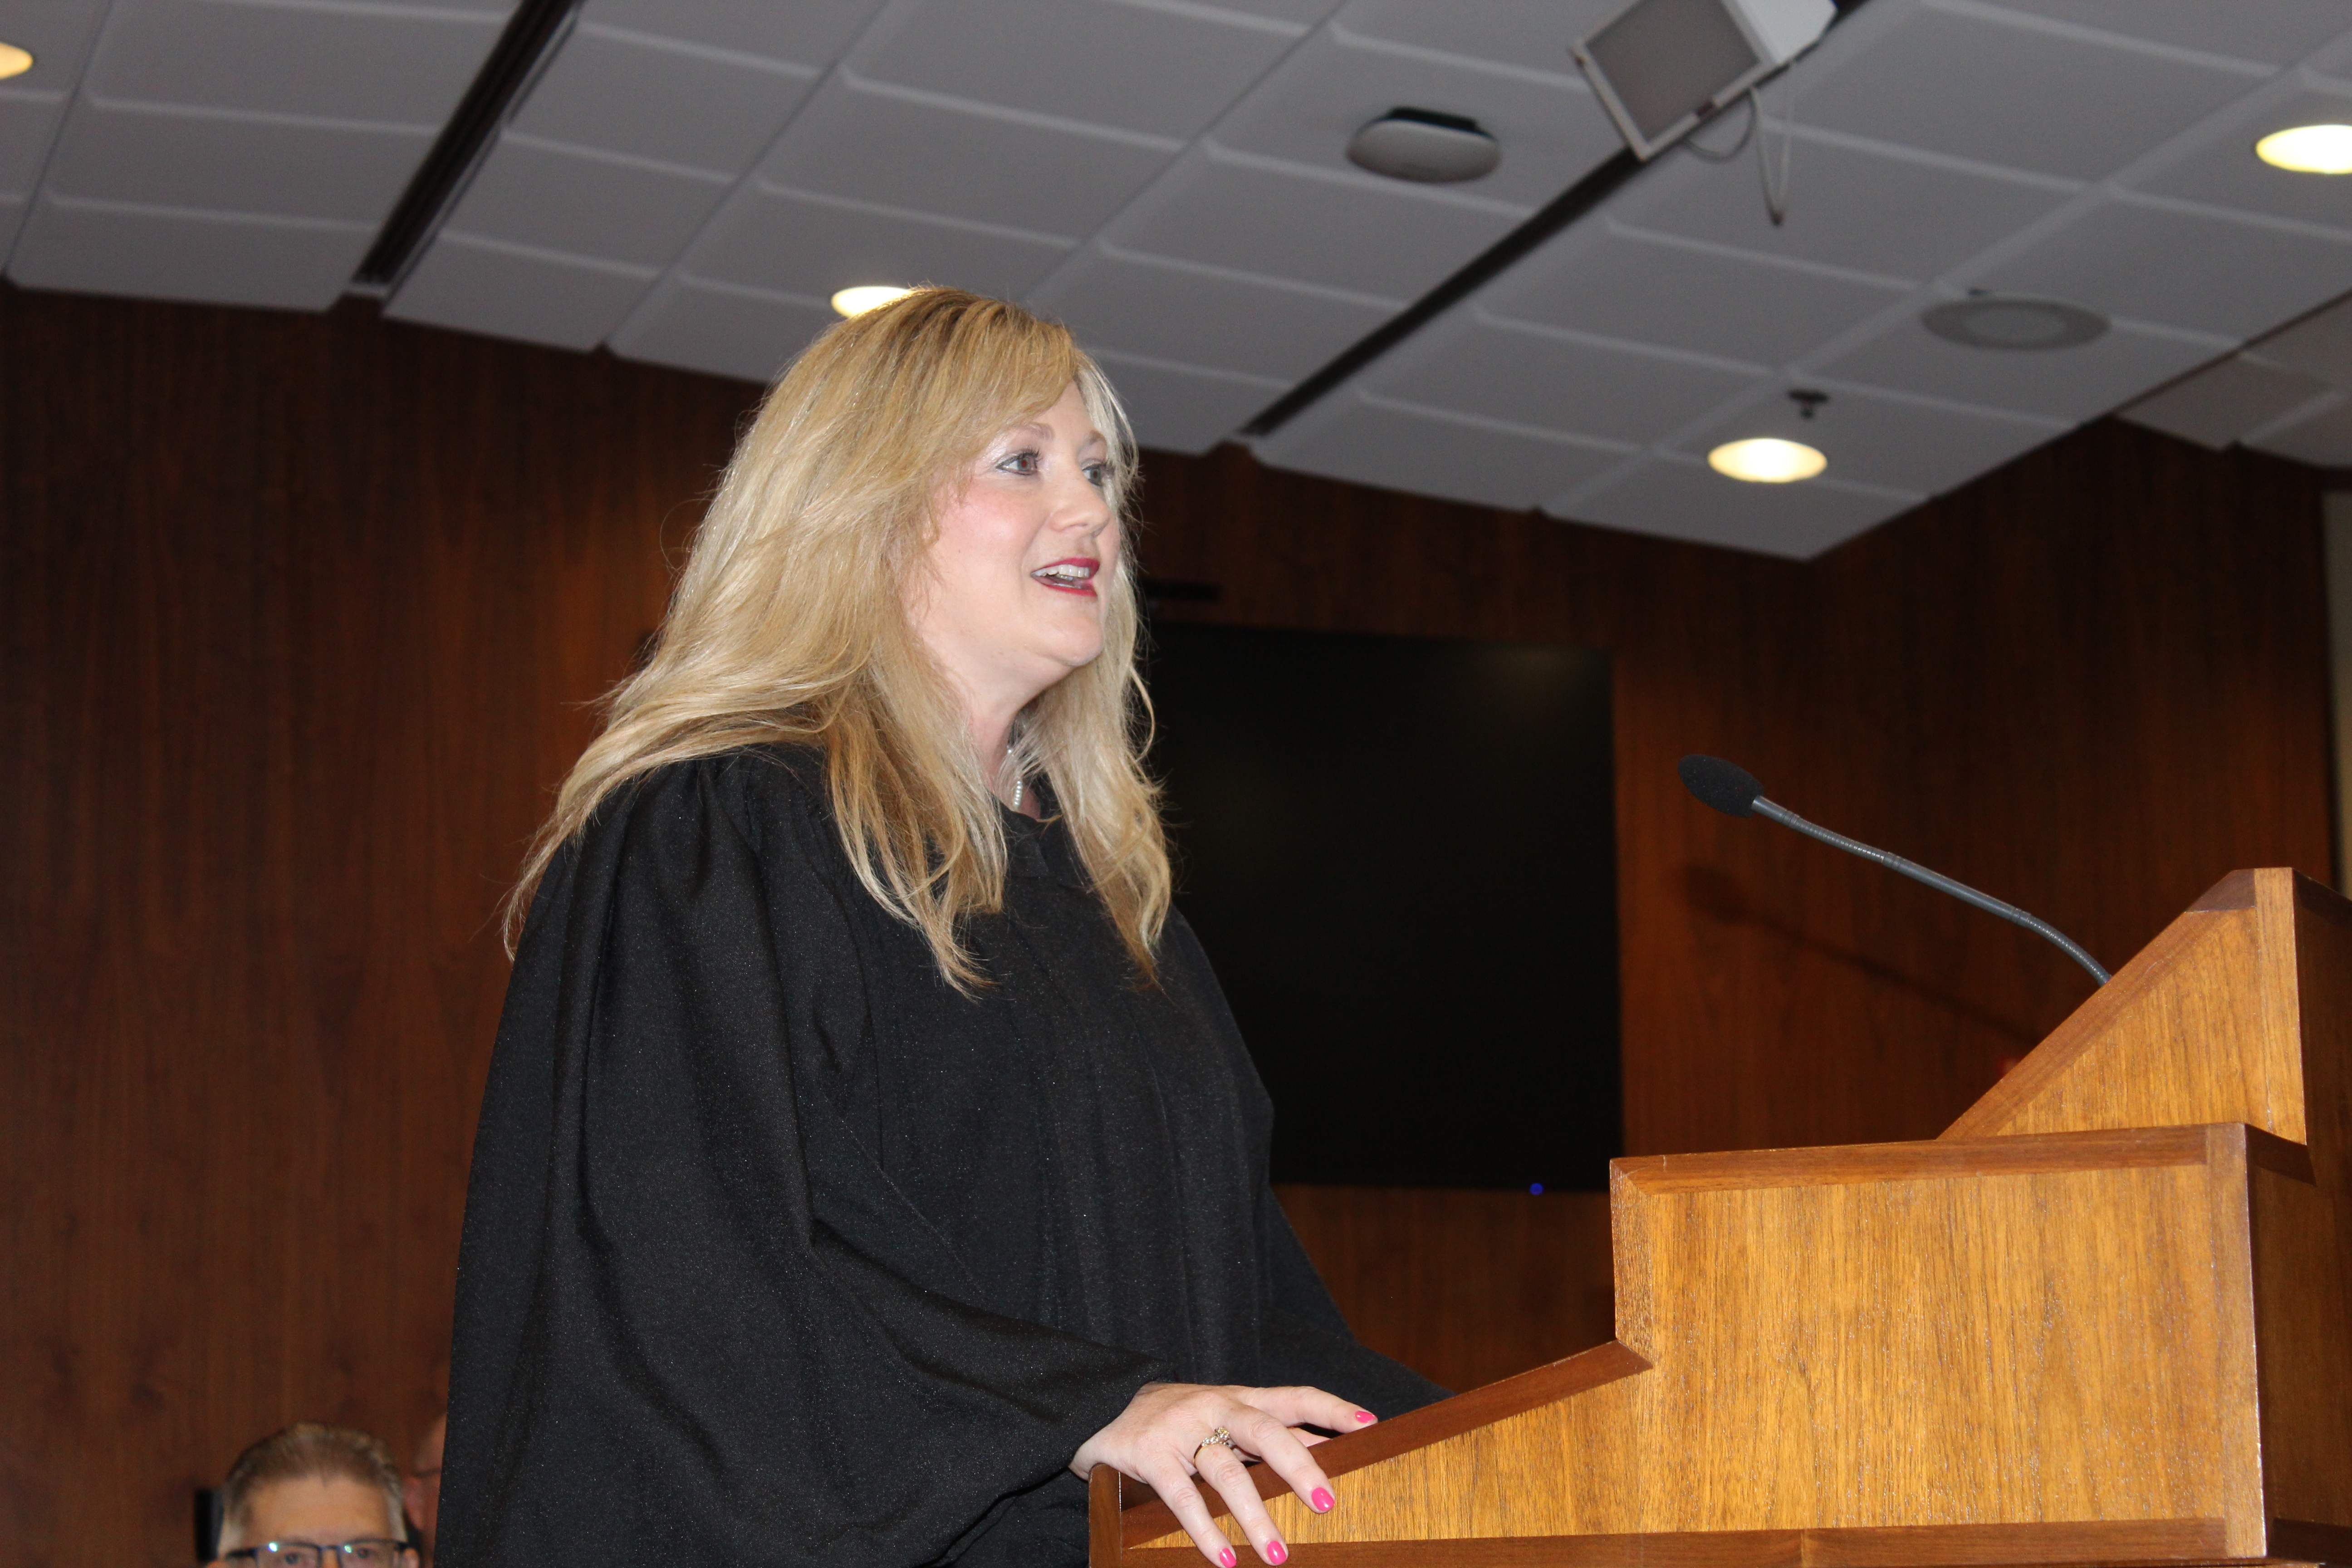 Douglas County Juvenile Court Judge Candice J. Novak delivers remarks during her investiture ceremony, Friday, June 11, 2021. (David Golbitz/Daily Record)